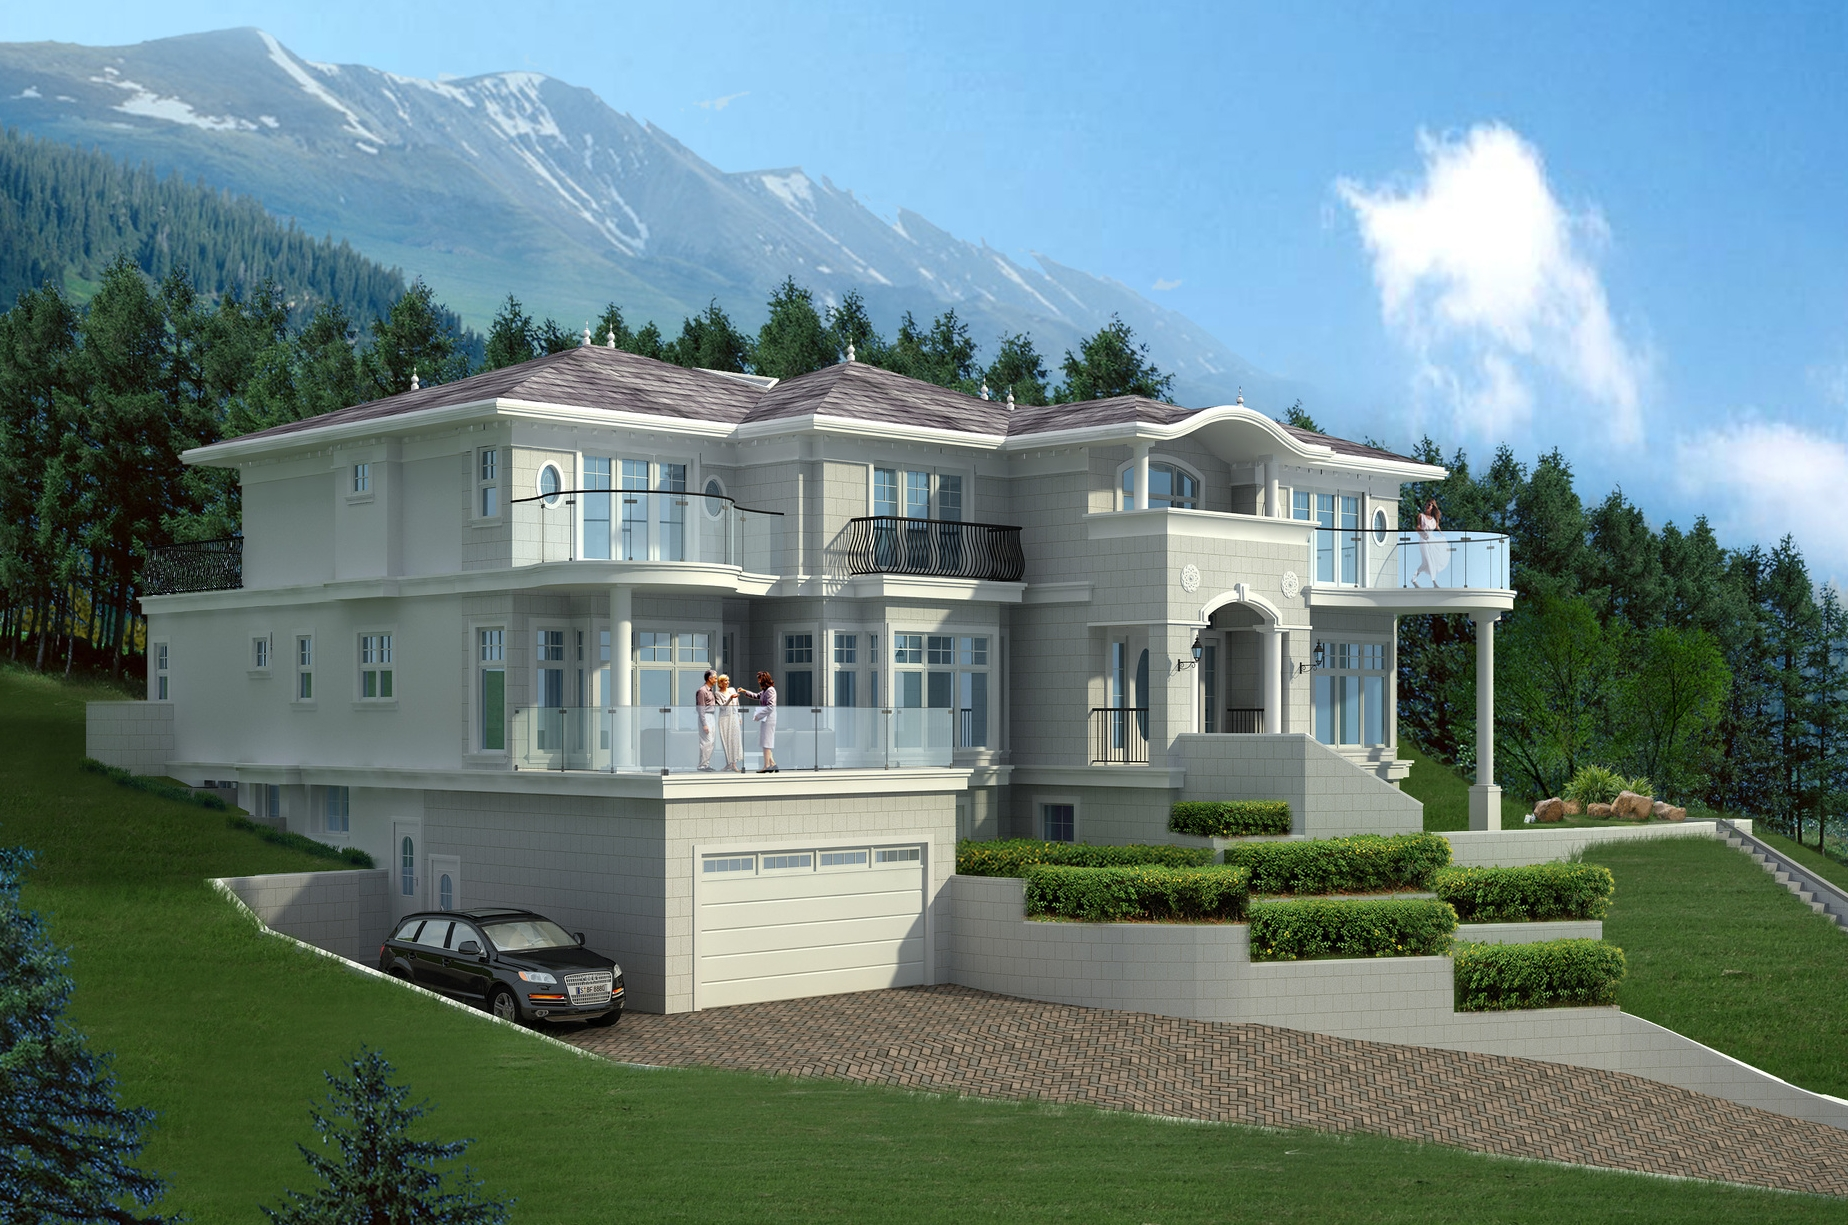 Pasricha Residence, Westhill, W. Van., BC